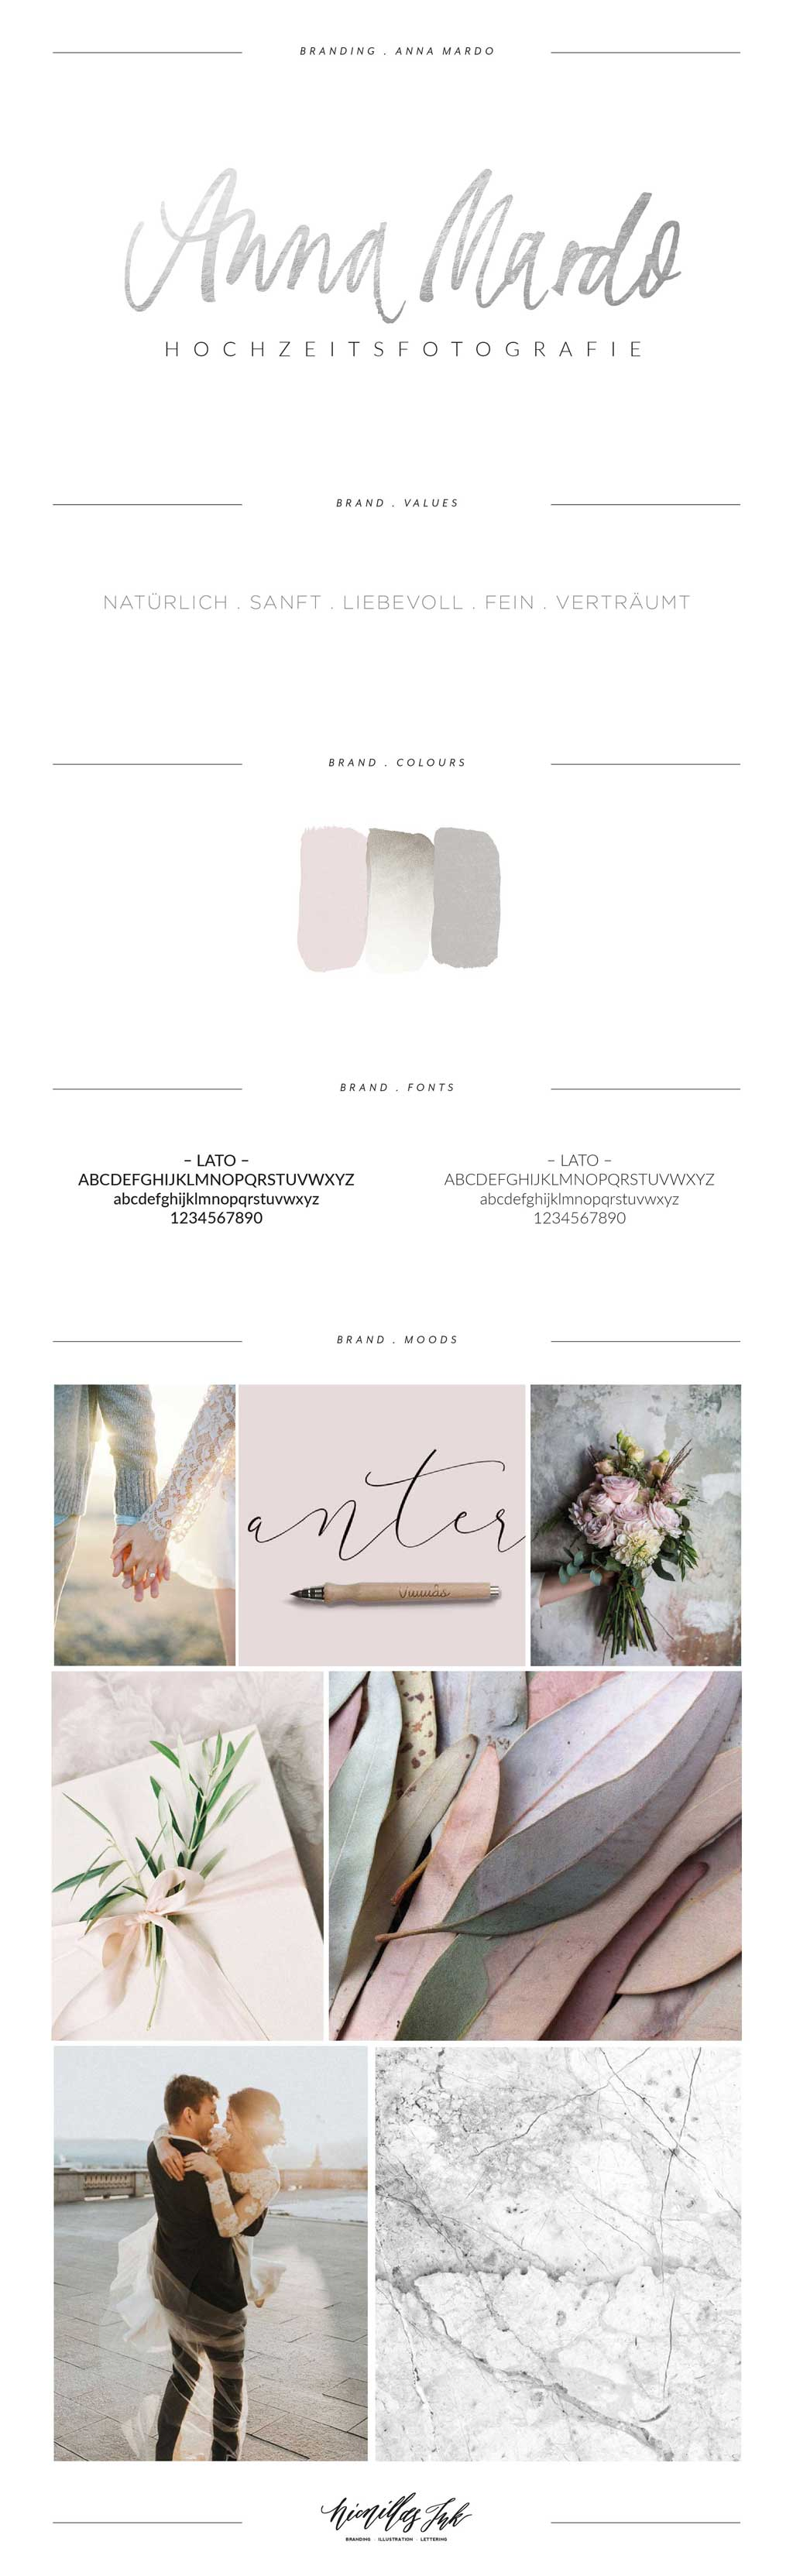 The final brand board for Anna Marodes new logo and branding